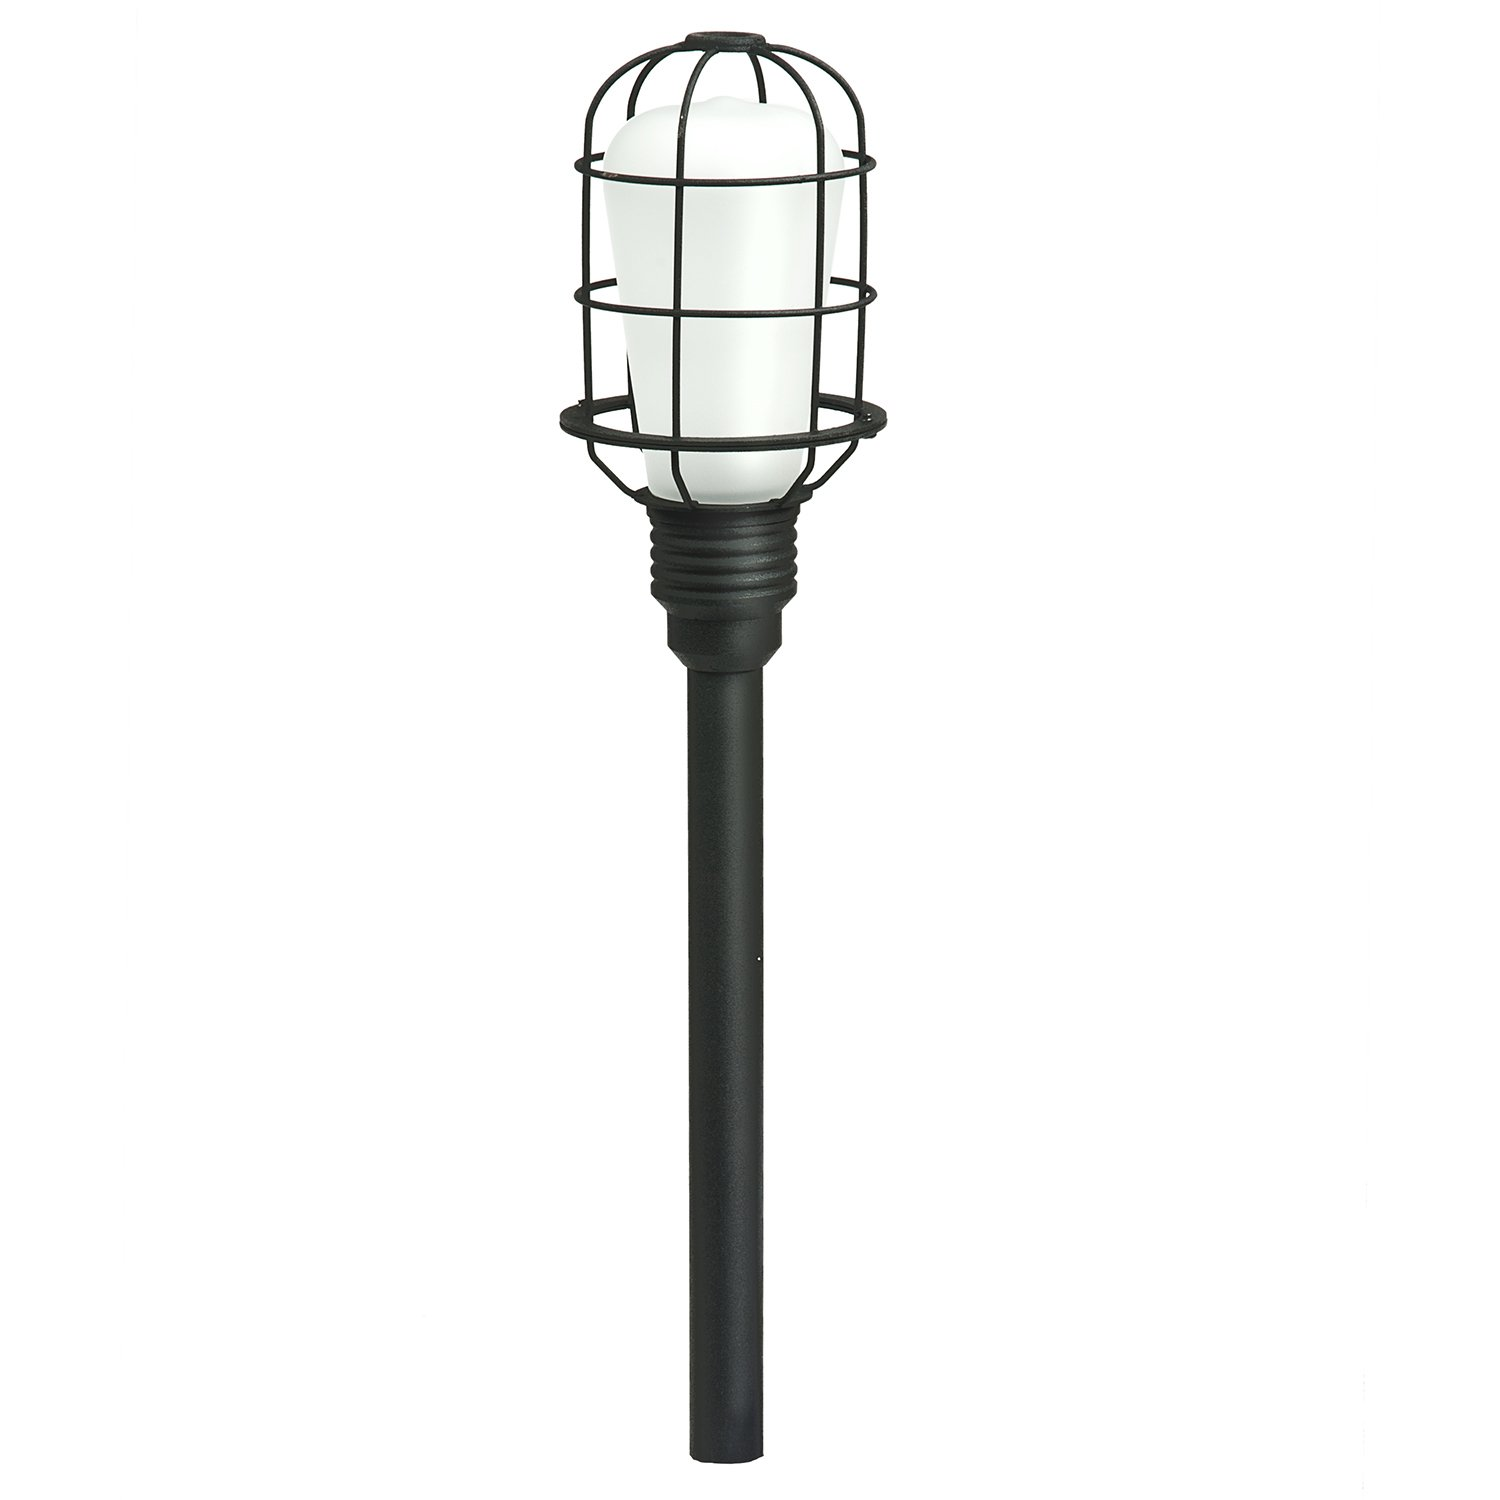 Paradise by Sterno Home Low Voltage LED Edison Path Light, 12V, 23 Lumens, 2 Watt